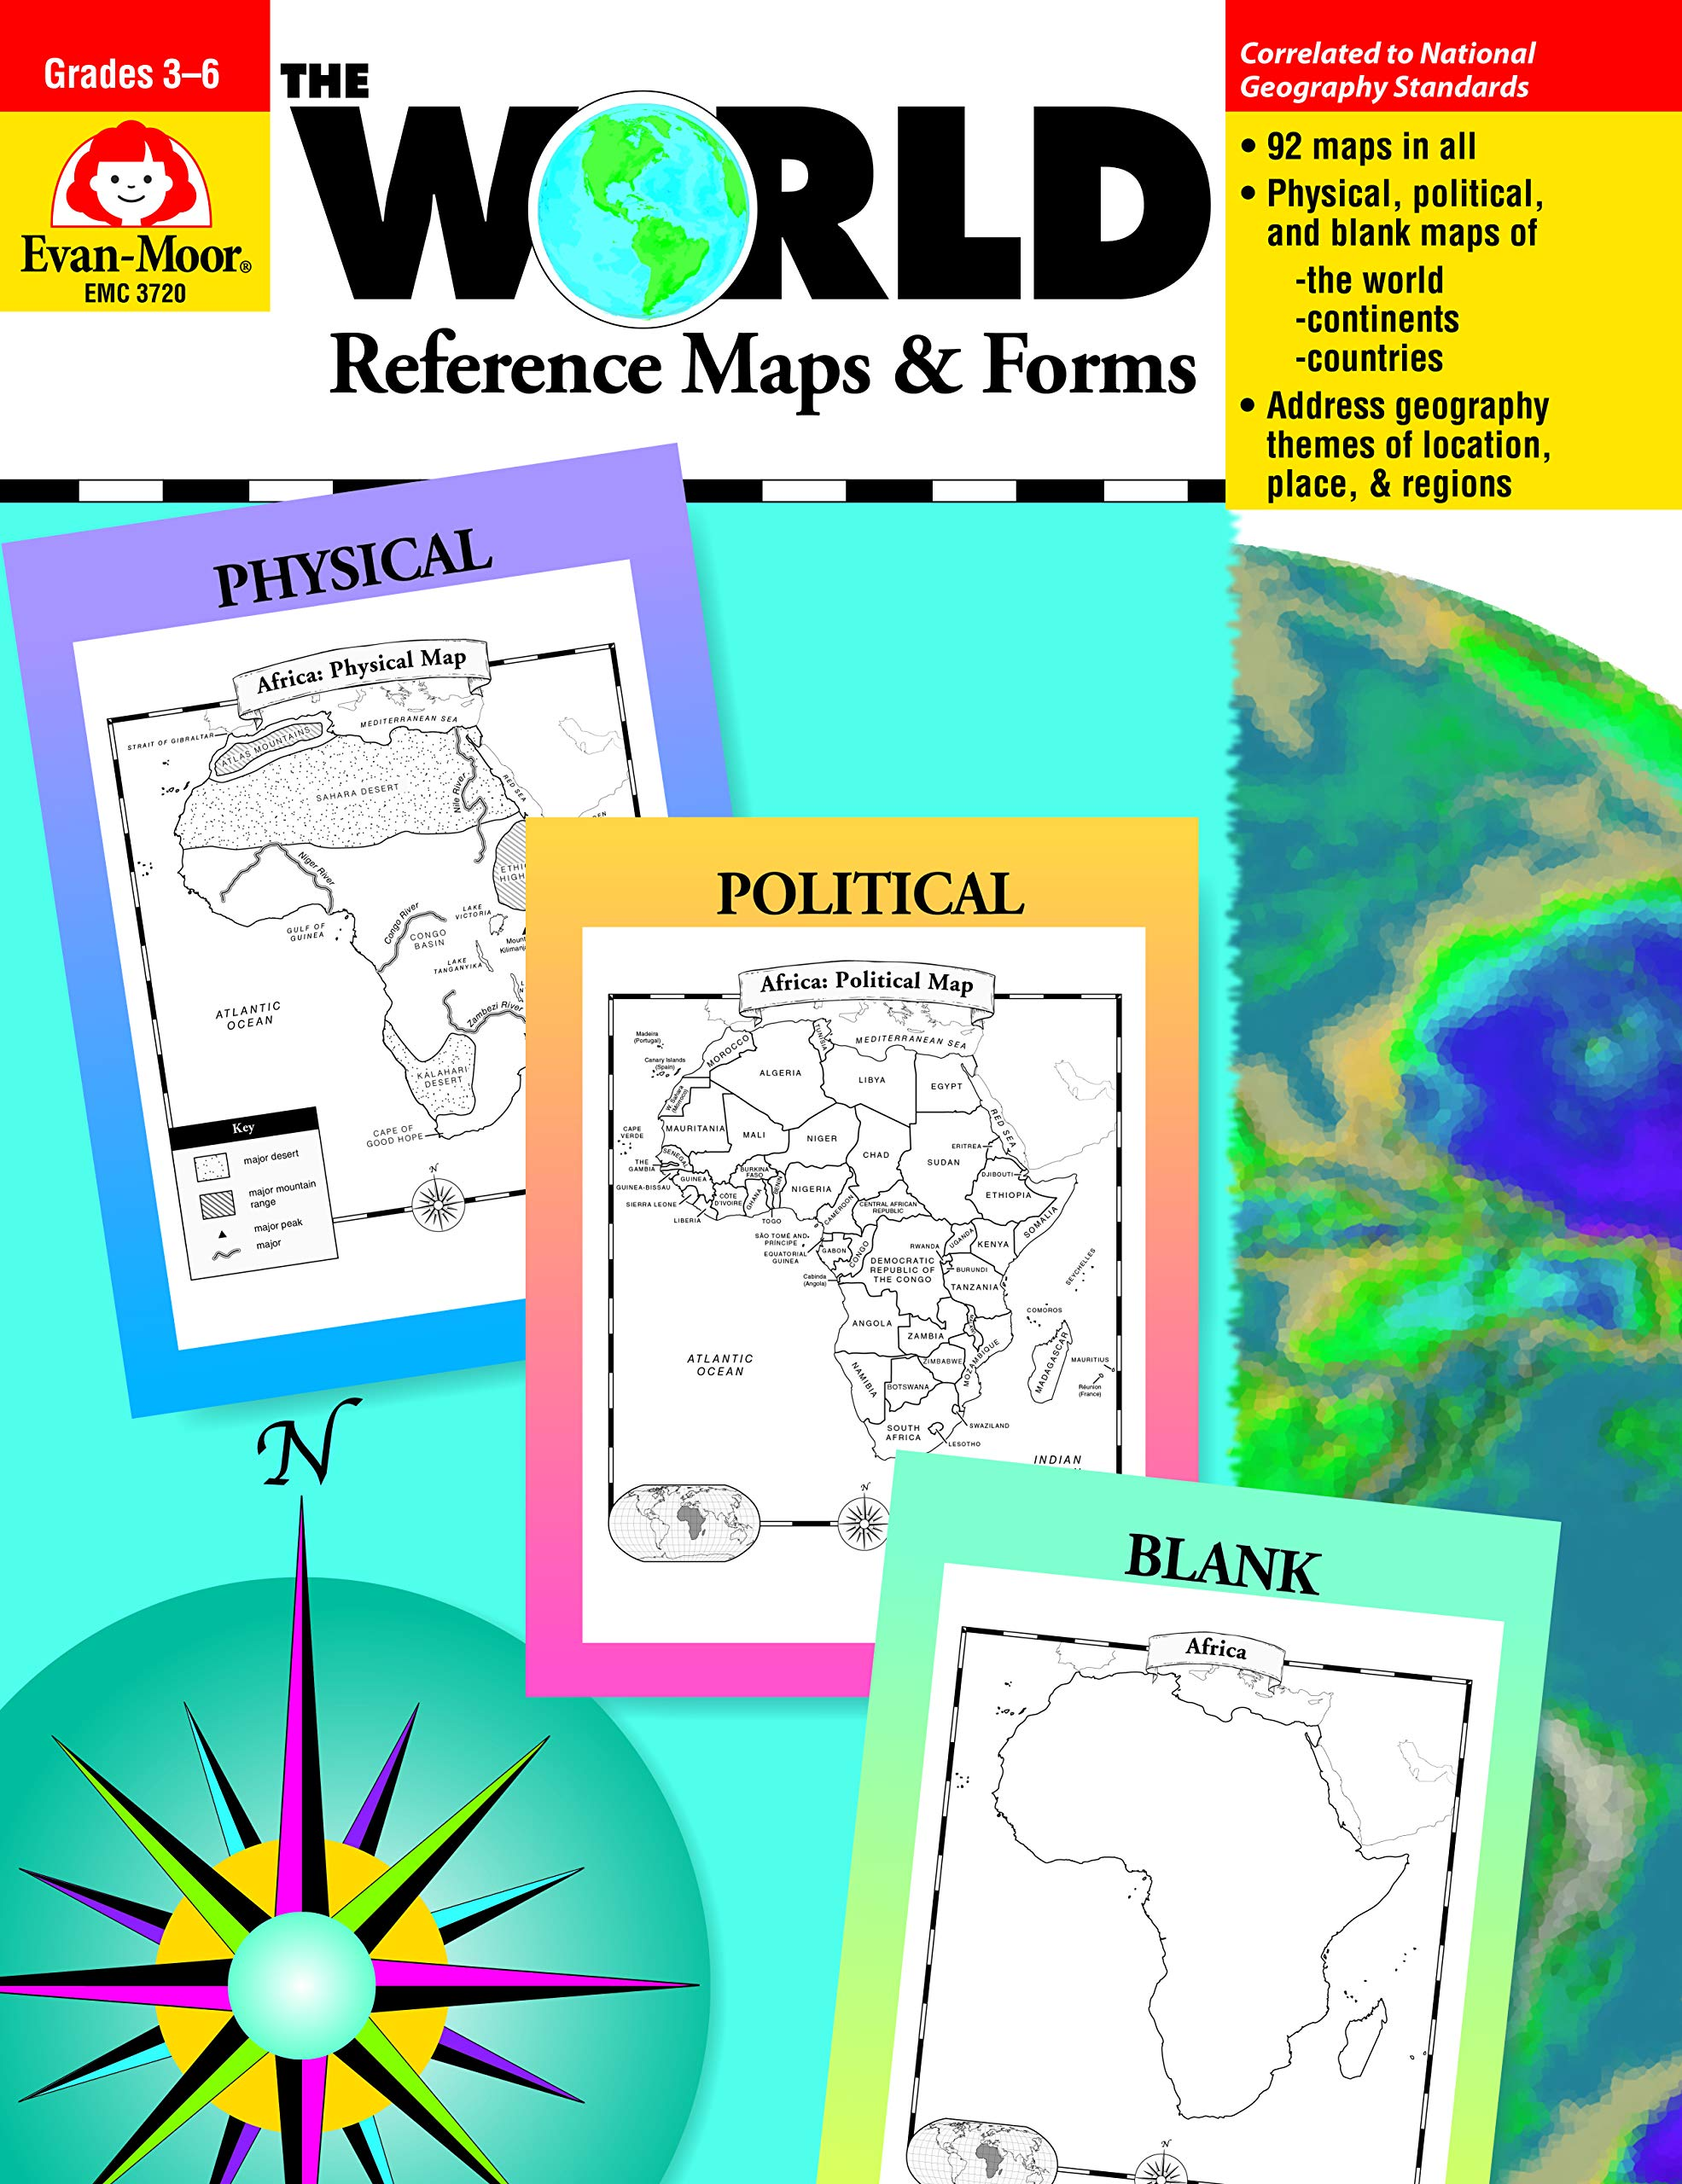 Amazon.com: The World Reference & Map Forms (World & Us Maps ... on map of african countries, map of southern europe, map of djibouti, map of chile, map of africa, map of lesotho, map of latvia, map of madagascar, map of mozambique, map of zambia, map of ghana, map of botswana, map of spain, map of bolivia, map of philippines, map of armenia, map of argentina, map of albania, map of burkina faso, map of namibia,